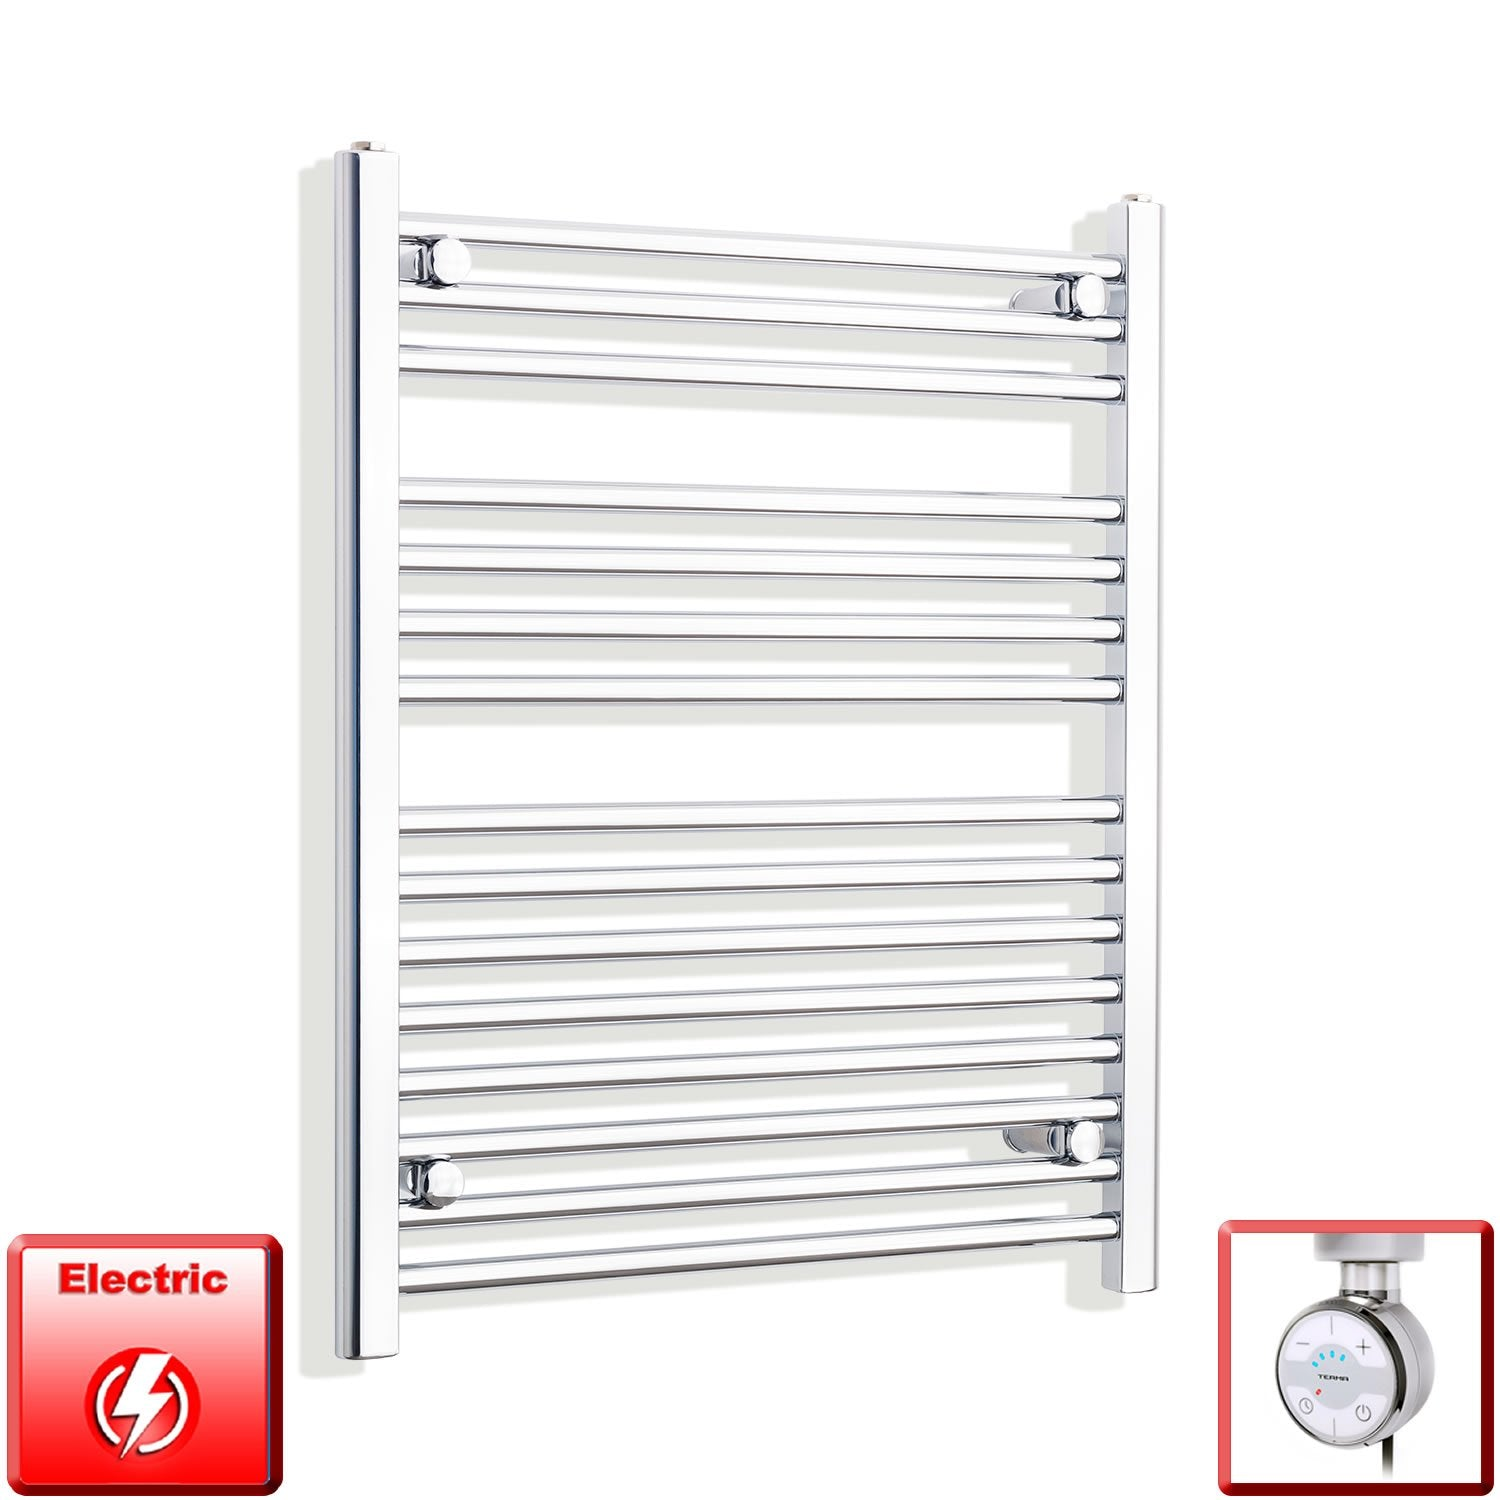 700mm Wide 800mm High Flat Or Curved Chrome Pre-Filled Electric Heated Towel Rail Radiator HTR,MOA Thermostatic Element / Straight